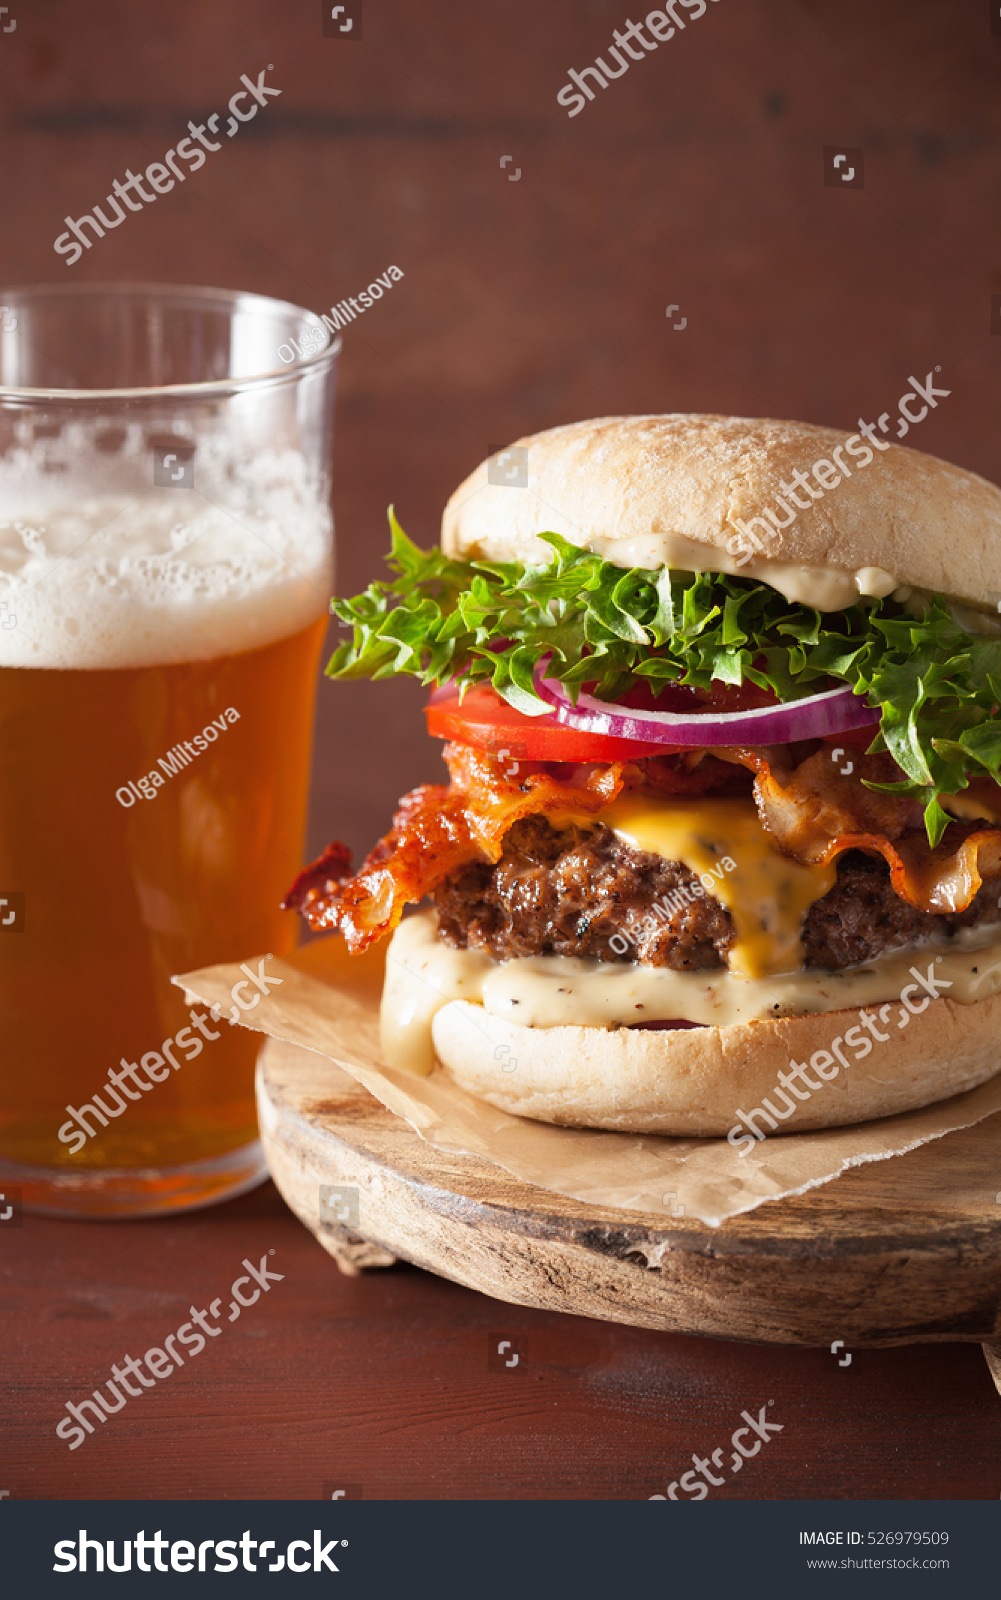 Bacon Cheese Burger Beef Patty Tomato Stock Photo 526979509 ...